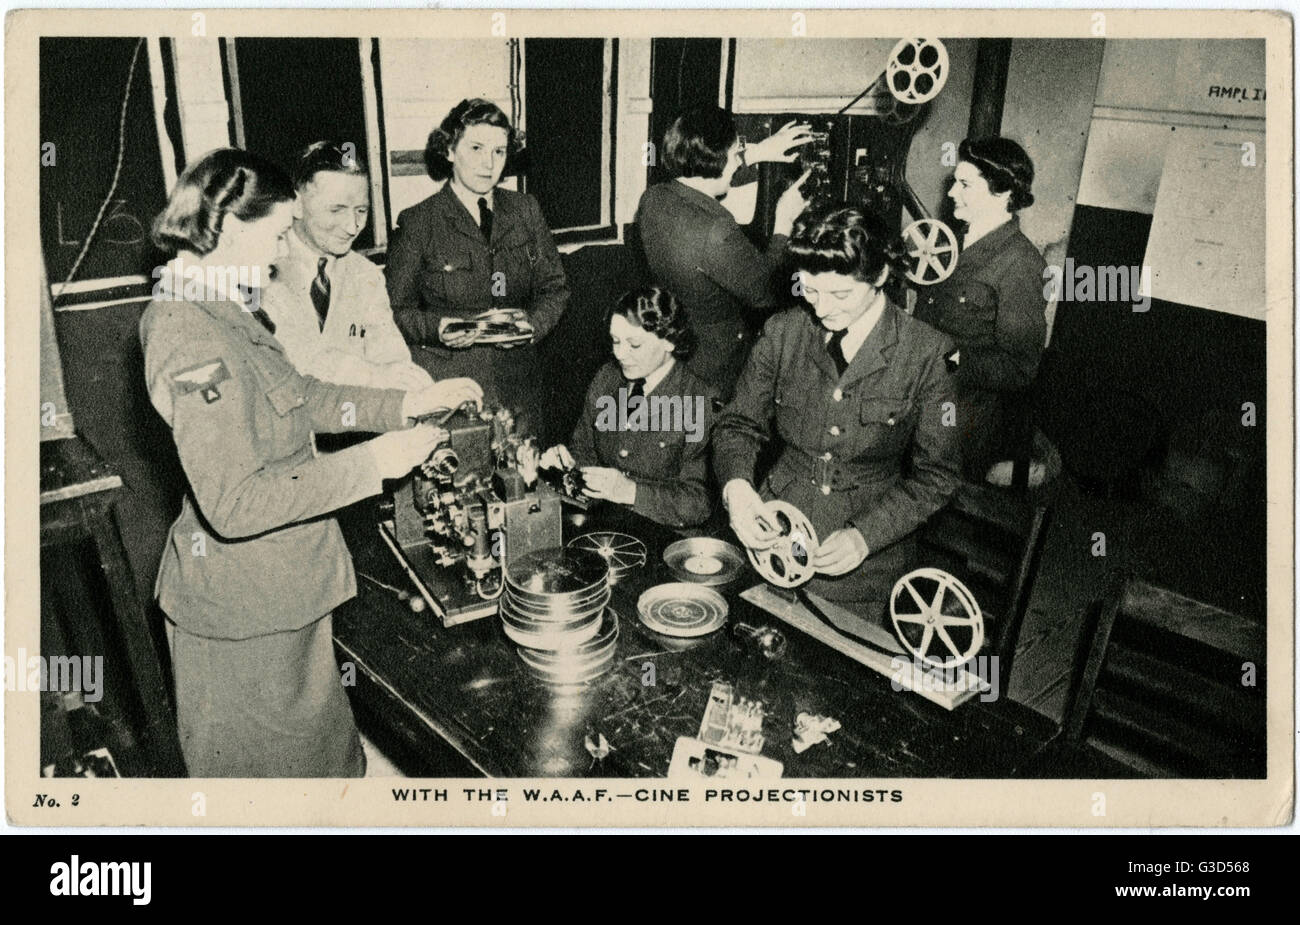 WW2 - With the W.A.A.F. - Cine Projectionists     Date: circa 1942 - Stock Image